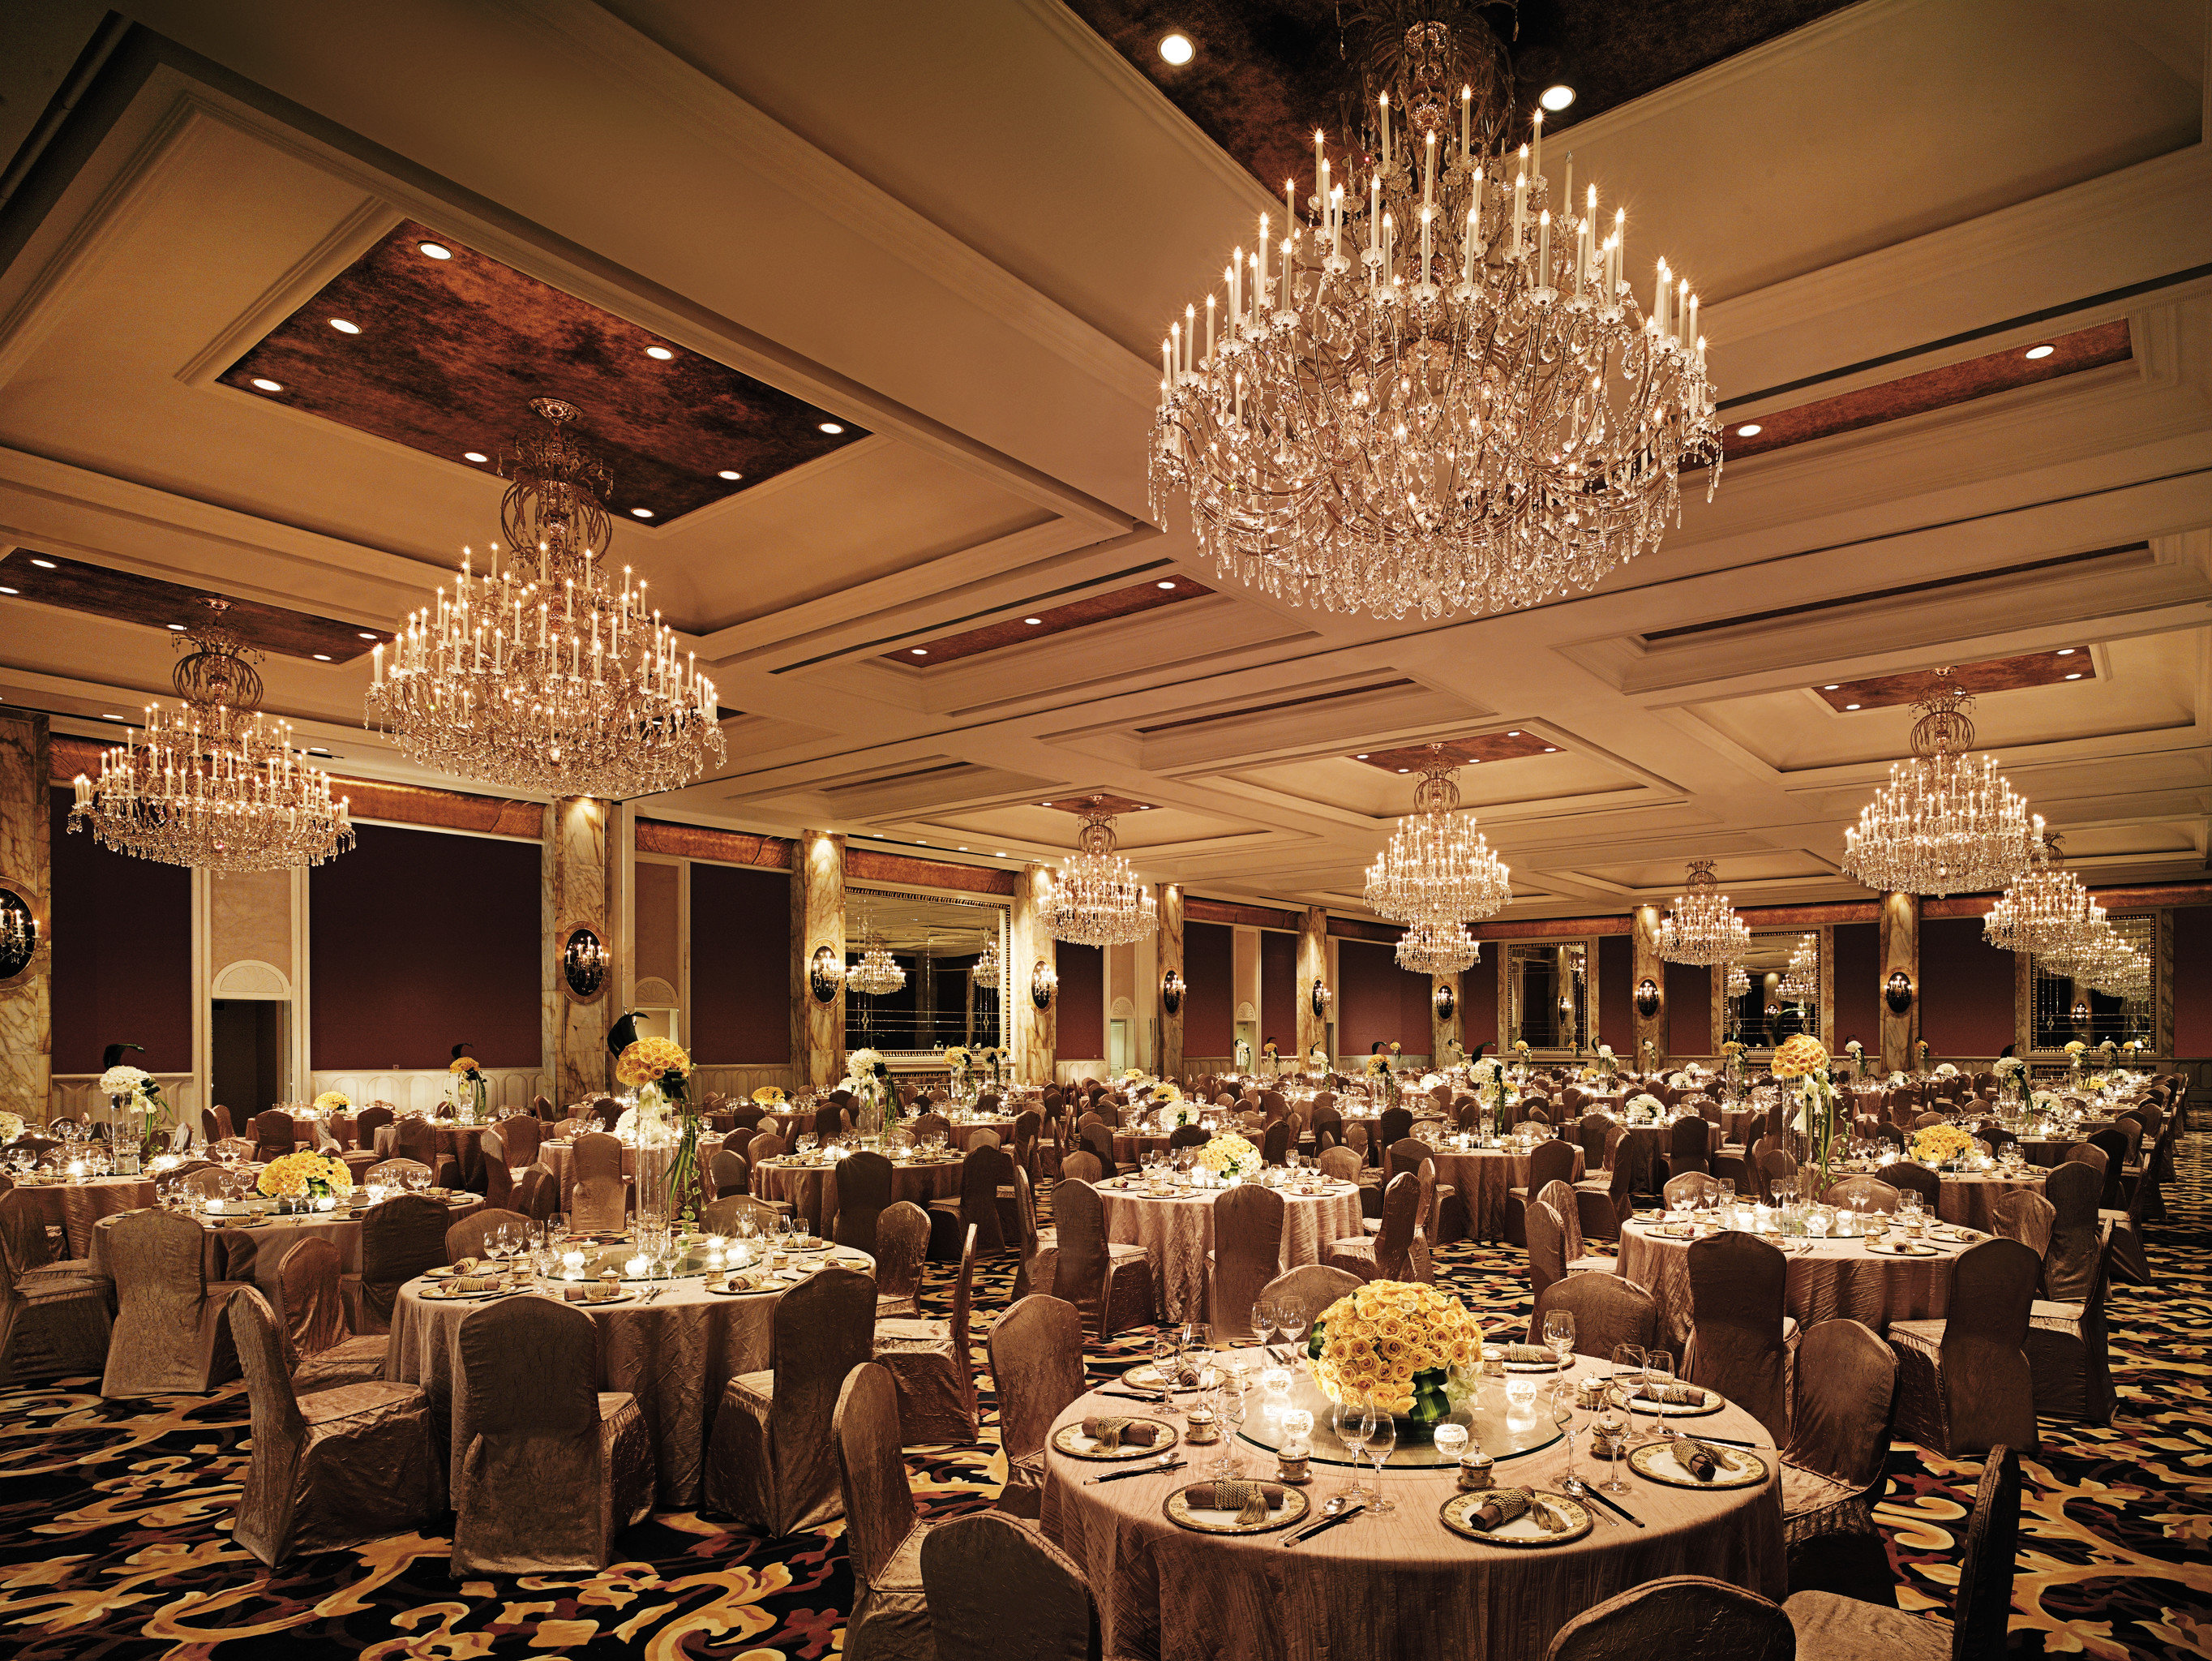 Dining Eat Elegant Historic Luxury function hall wedding banquet wedding reception ceremony ballroom Party dinner fancy set